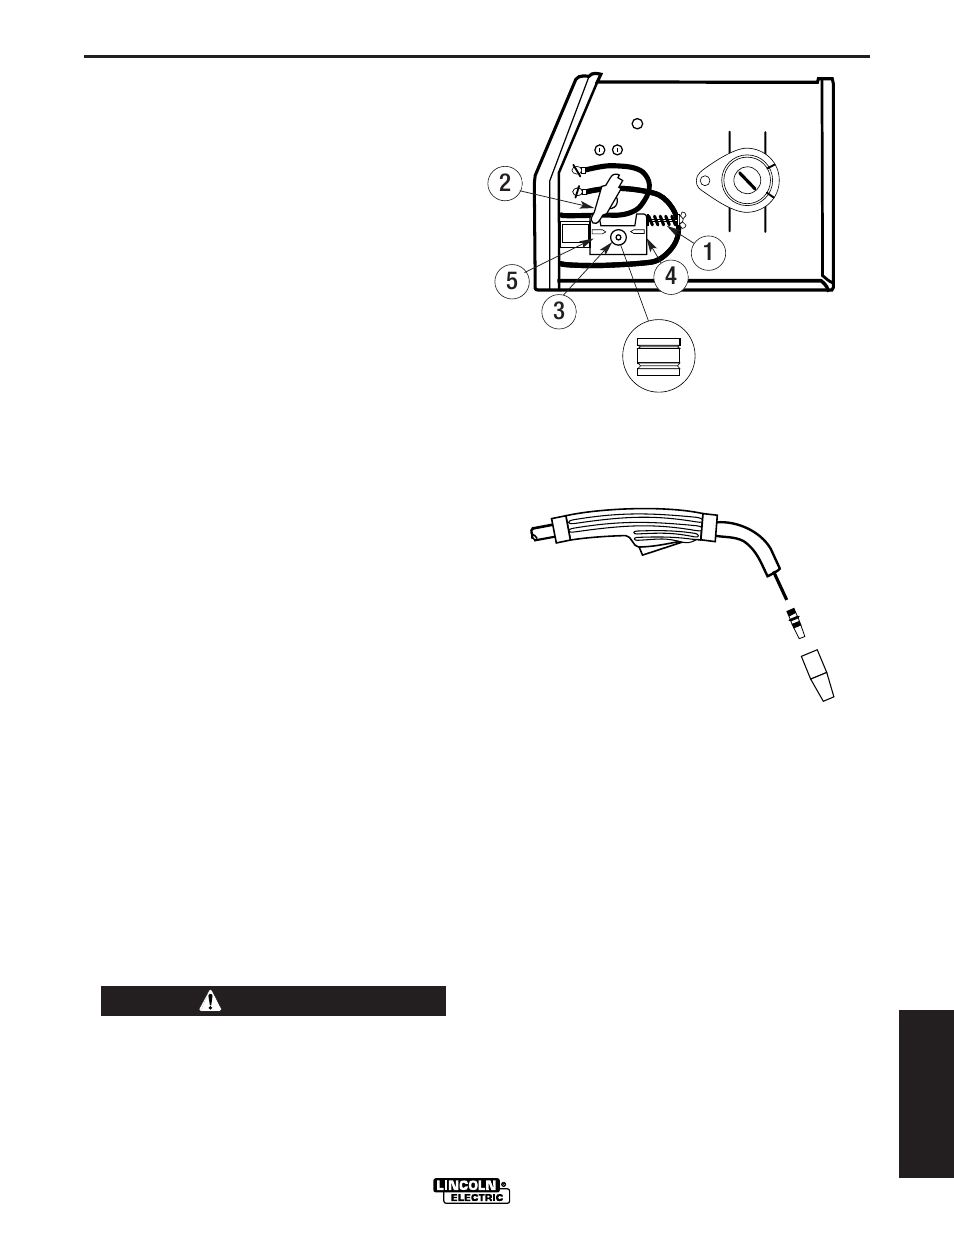 Toyota Tacoma 2015-2018 Service Manual: Roof Headlining(for Access Cab)